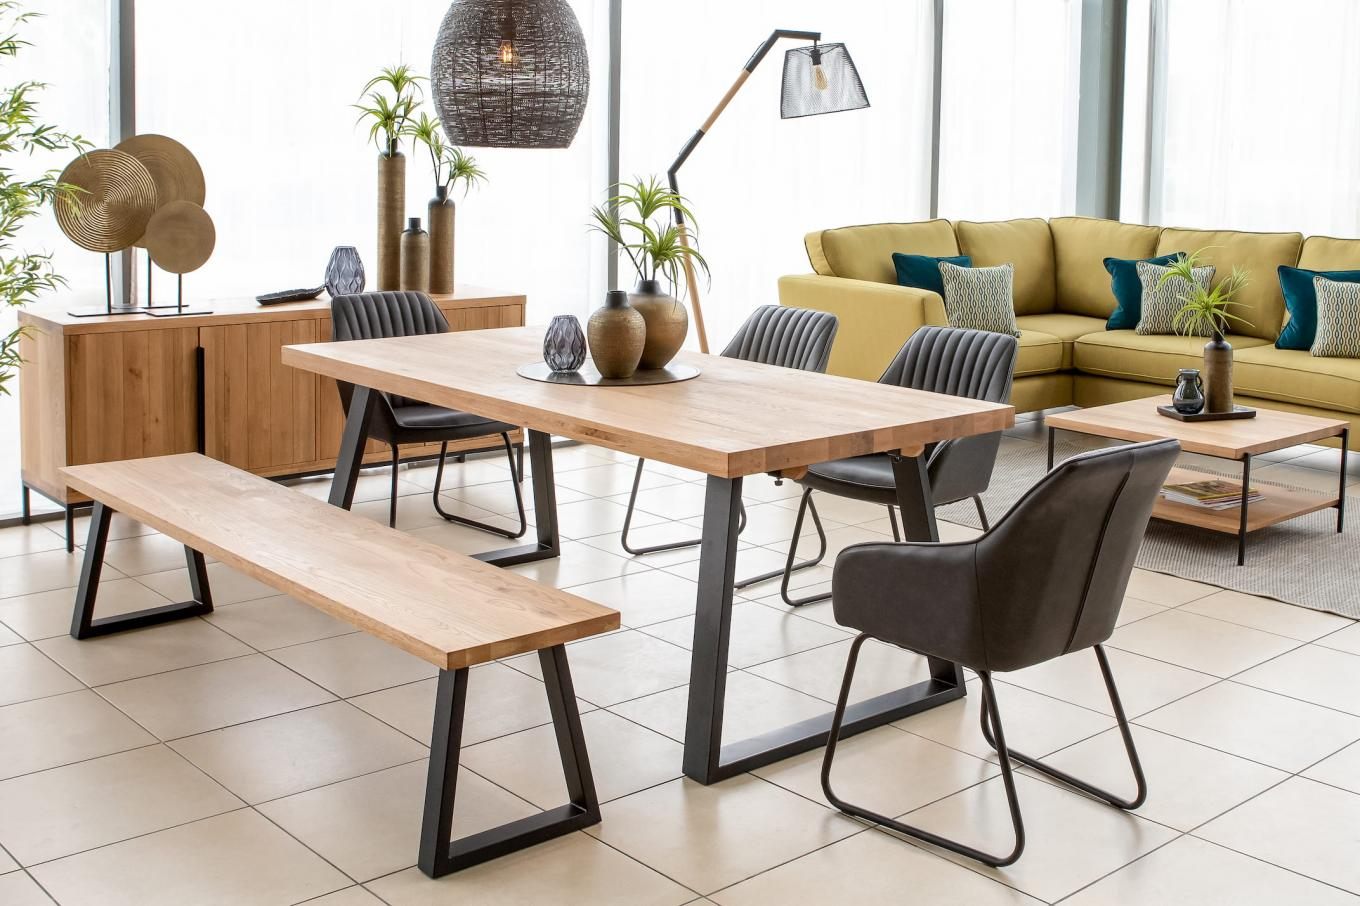 RHF Texas Large Bench & Extendable Table with Bradley Chairs Lookbook